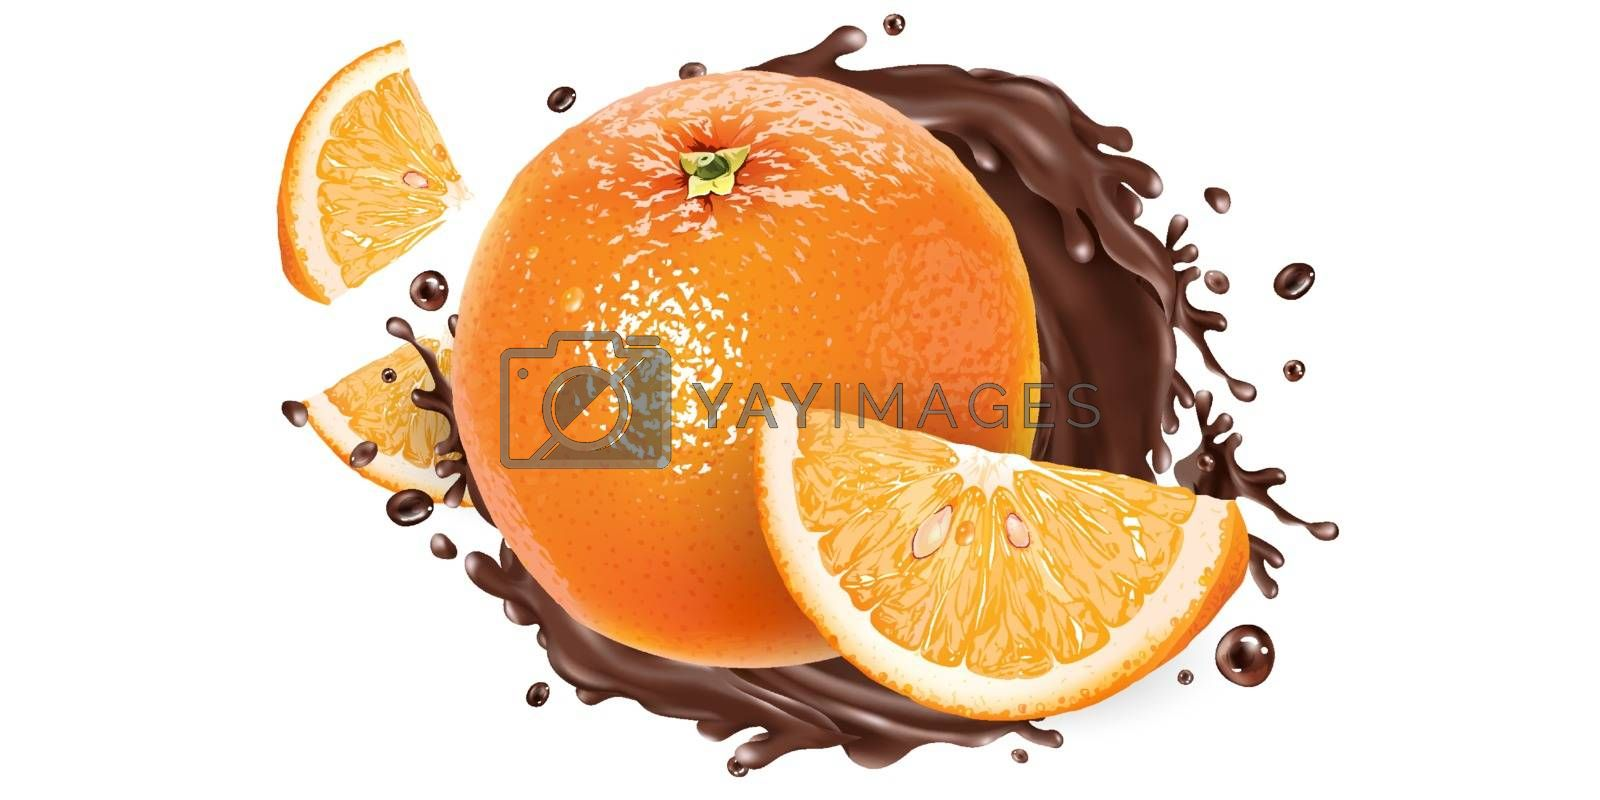 Fresh oranges and a splash of liquid chocolate on a white background. Realistic vector illustration.